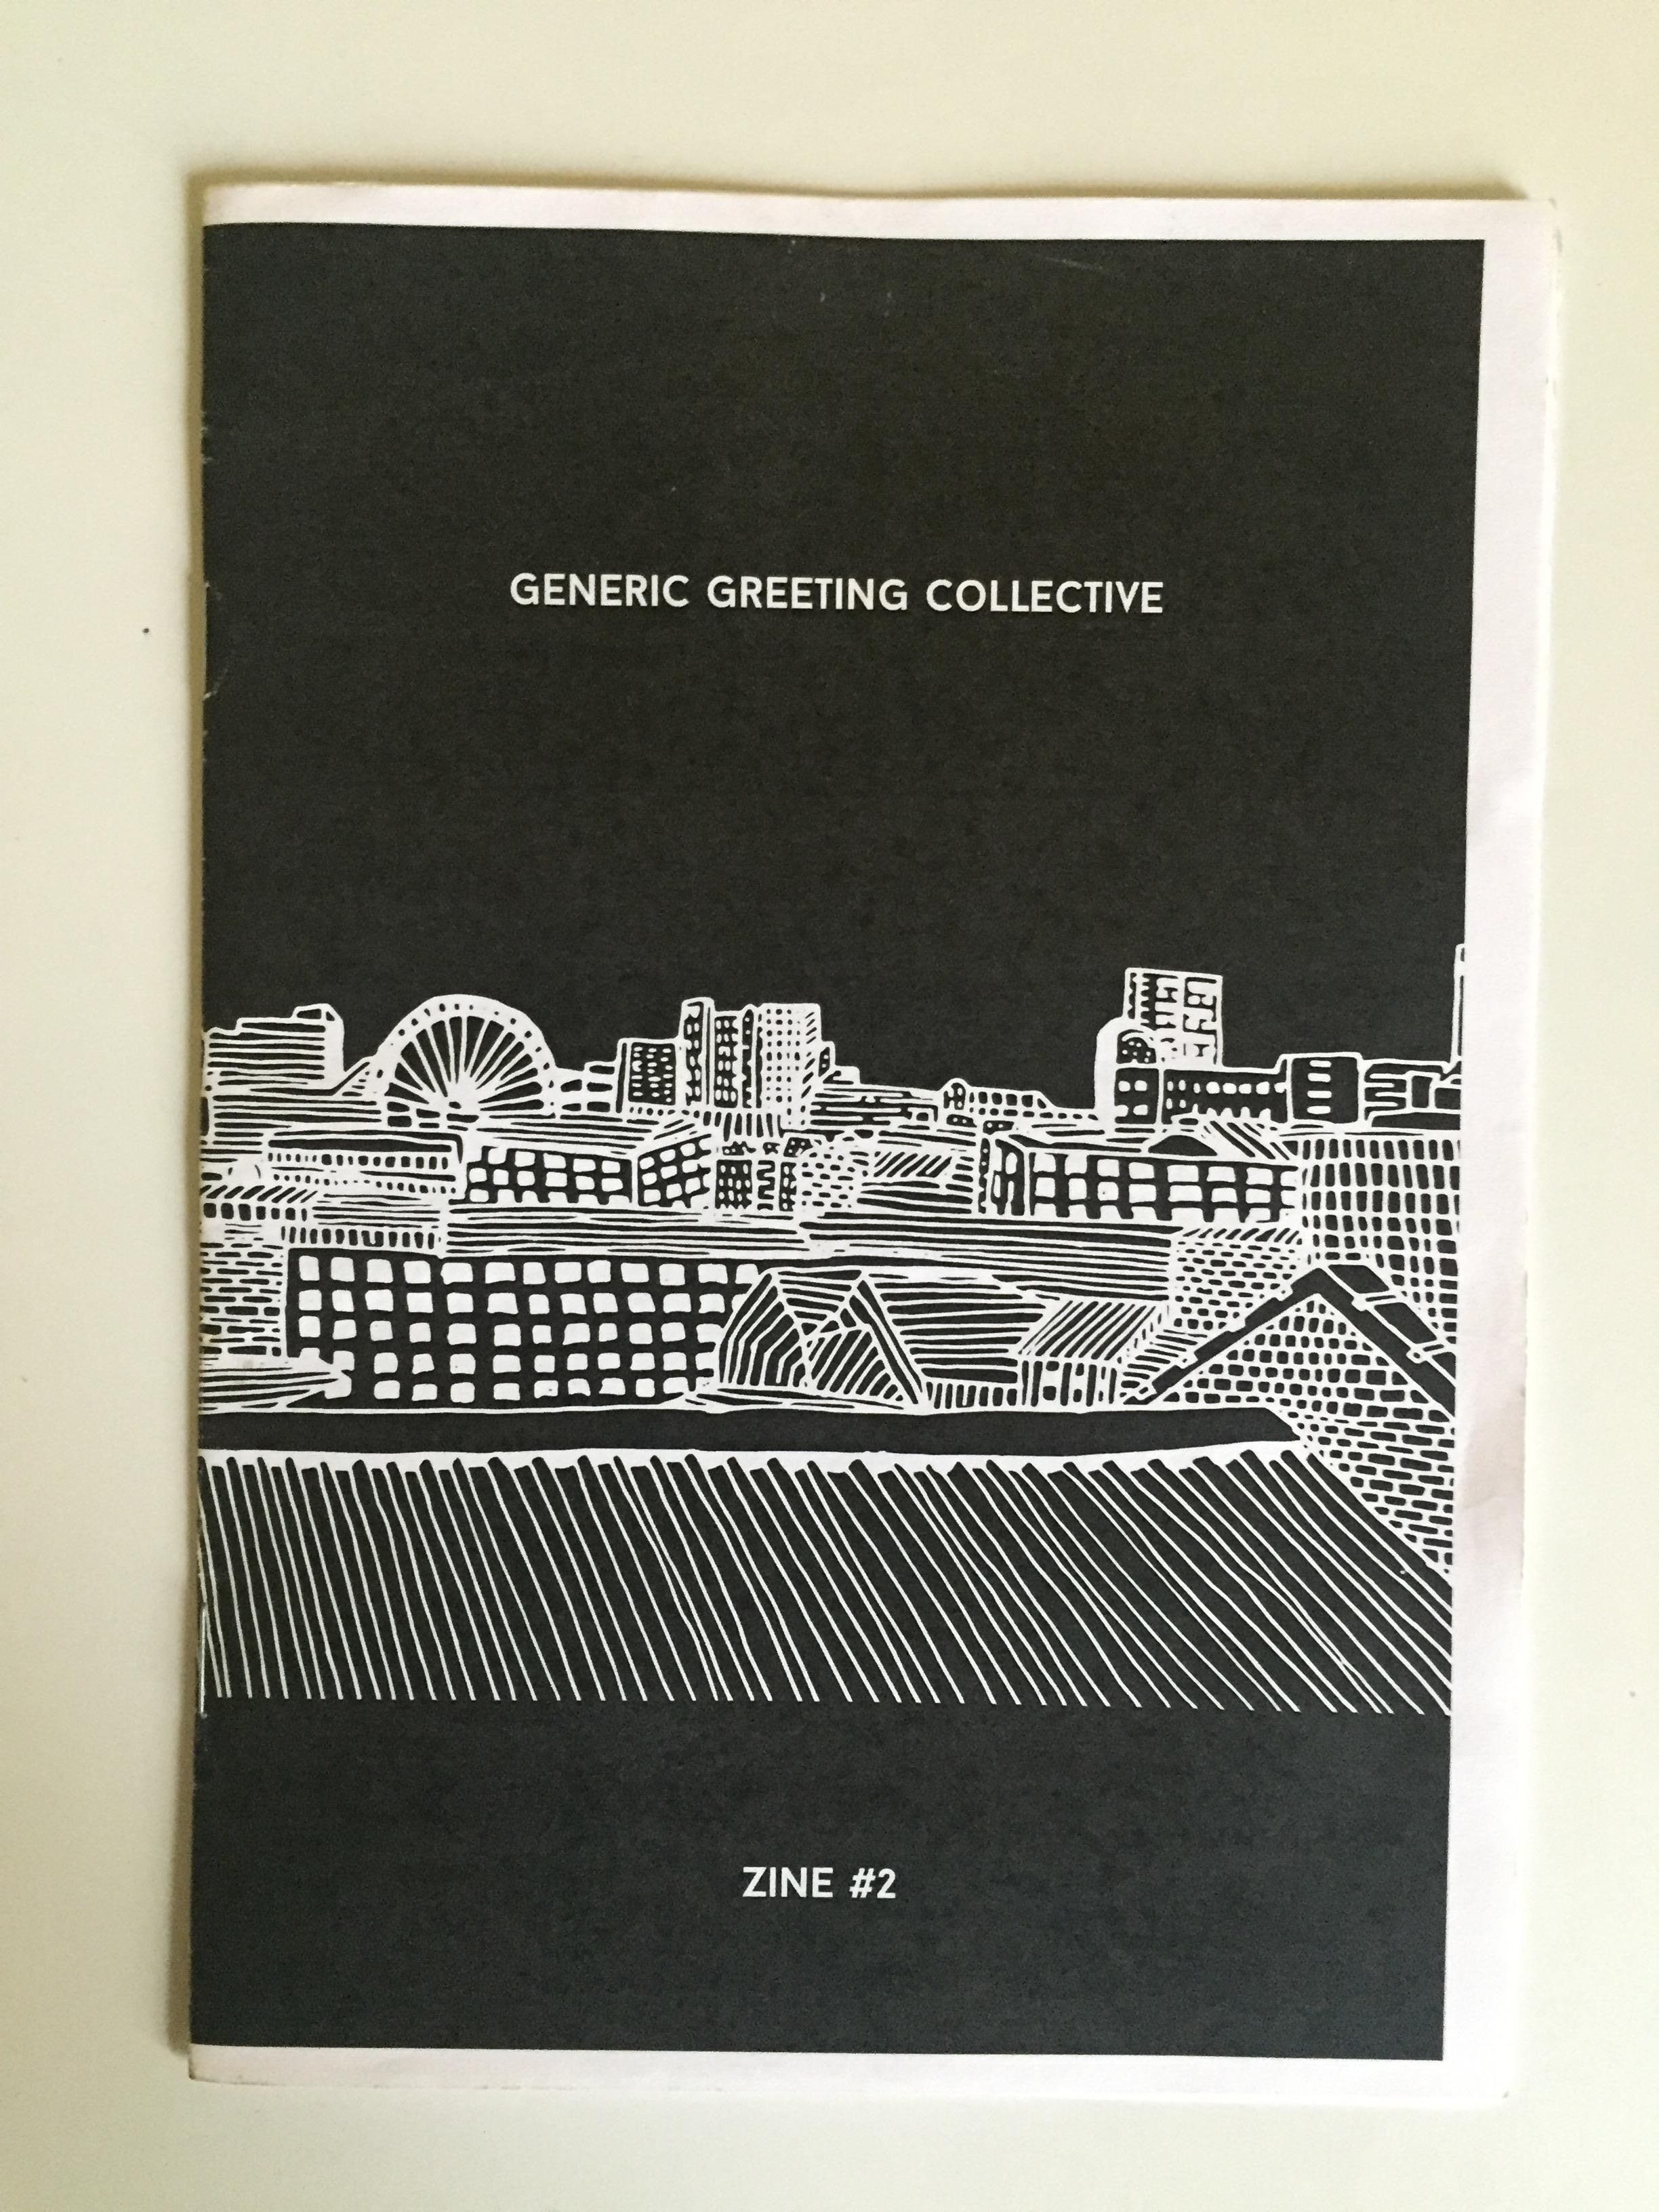 'Generic Greeting Collective Zine #2'